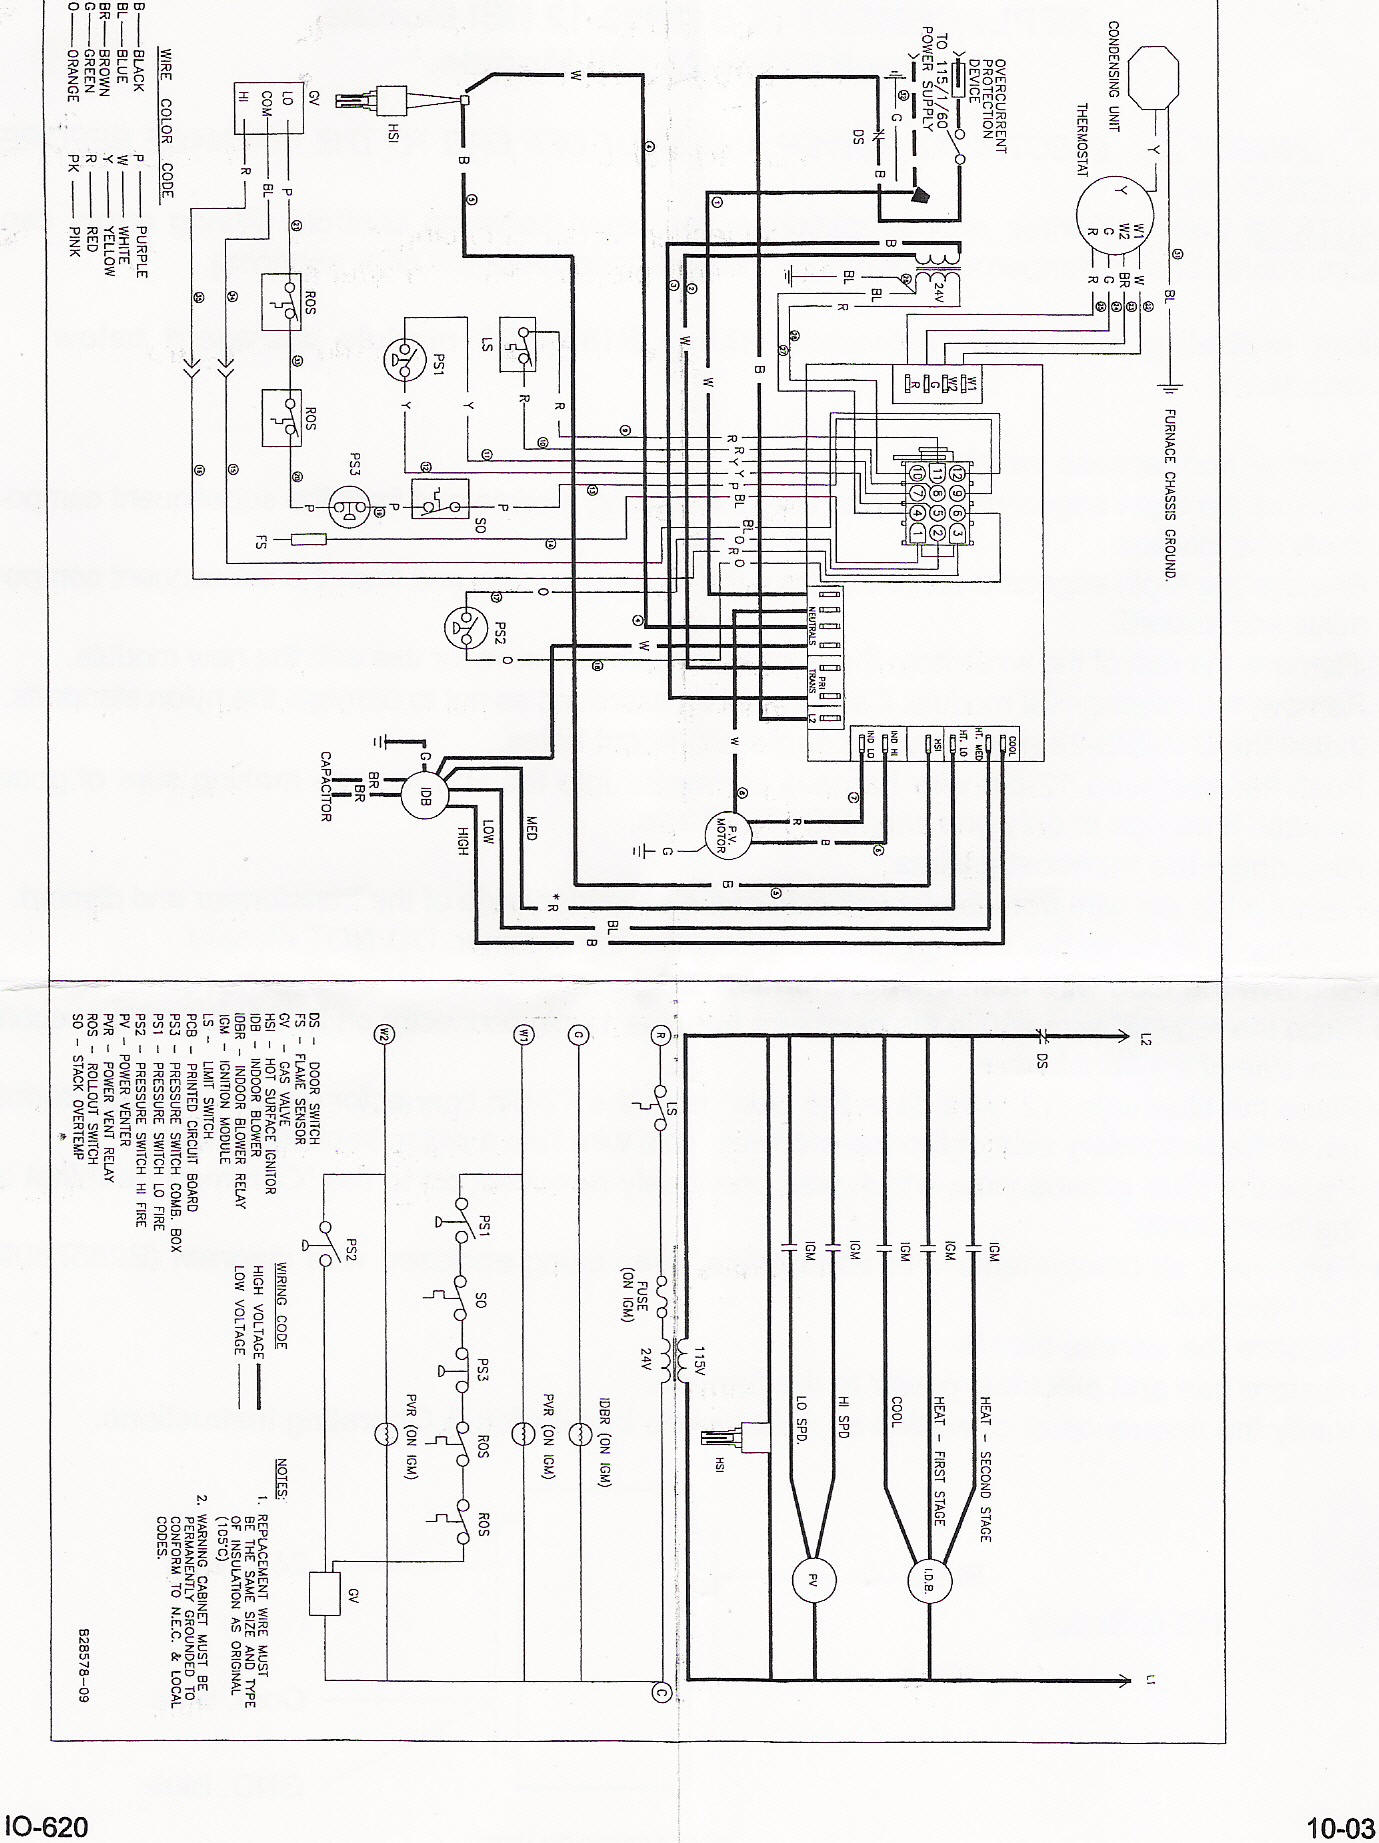 goodma2 instr goodman control board b18099 23 instructions lh33wp003a wiring diagram at gsmx.co